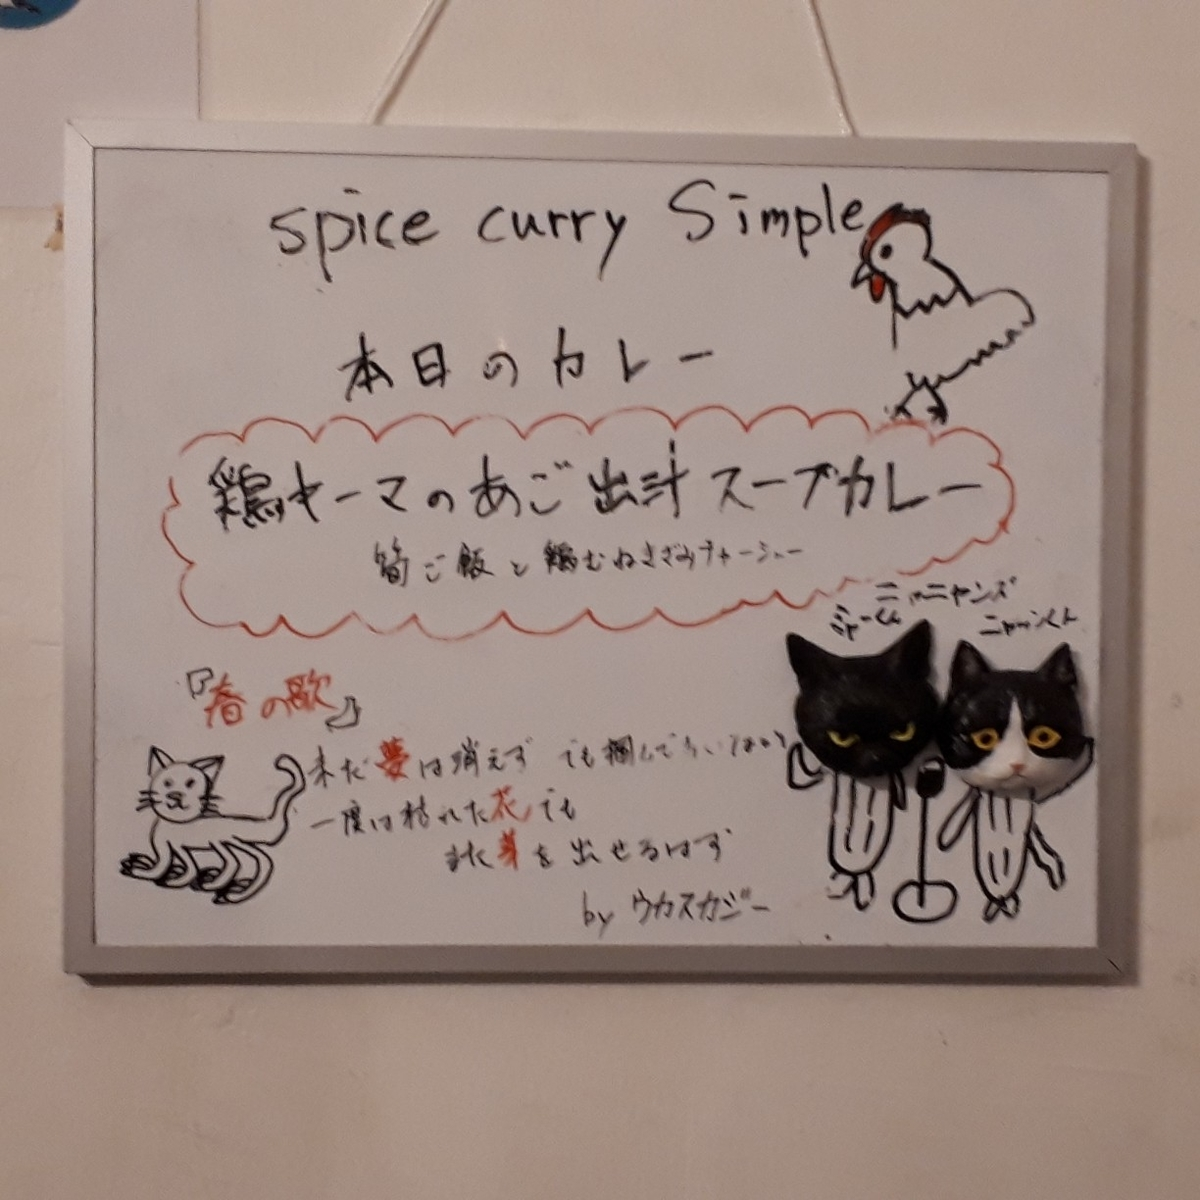 spice curry Simple  鶏キーマのあご出汁スープカレー